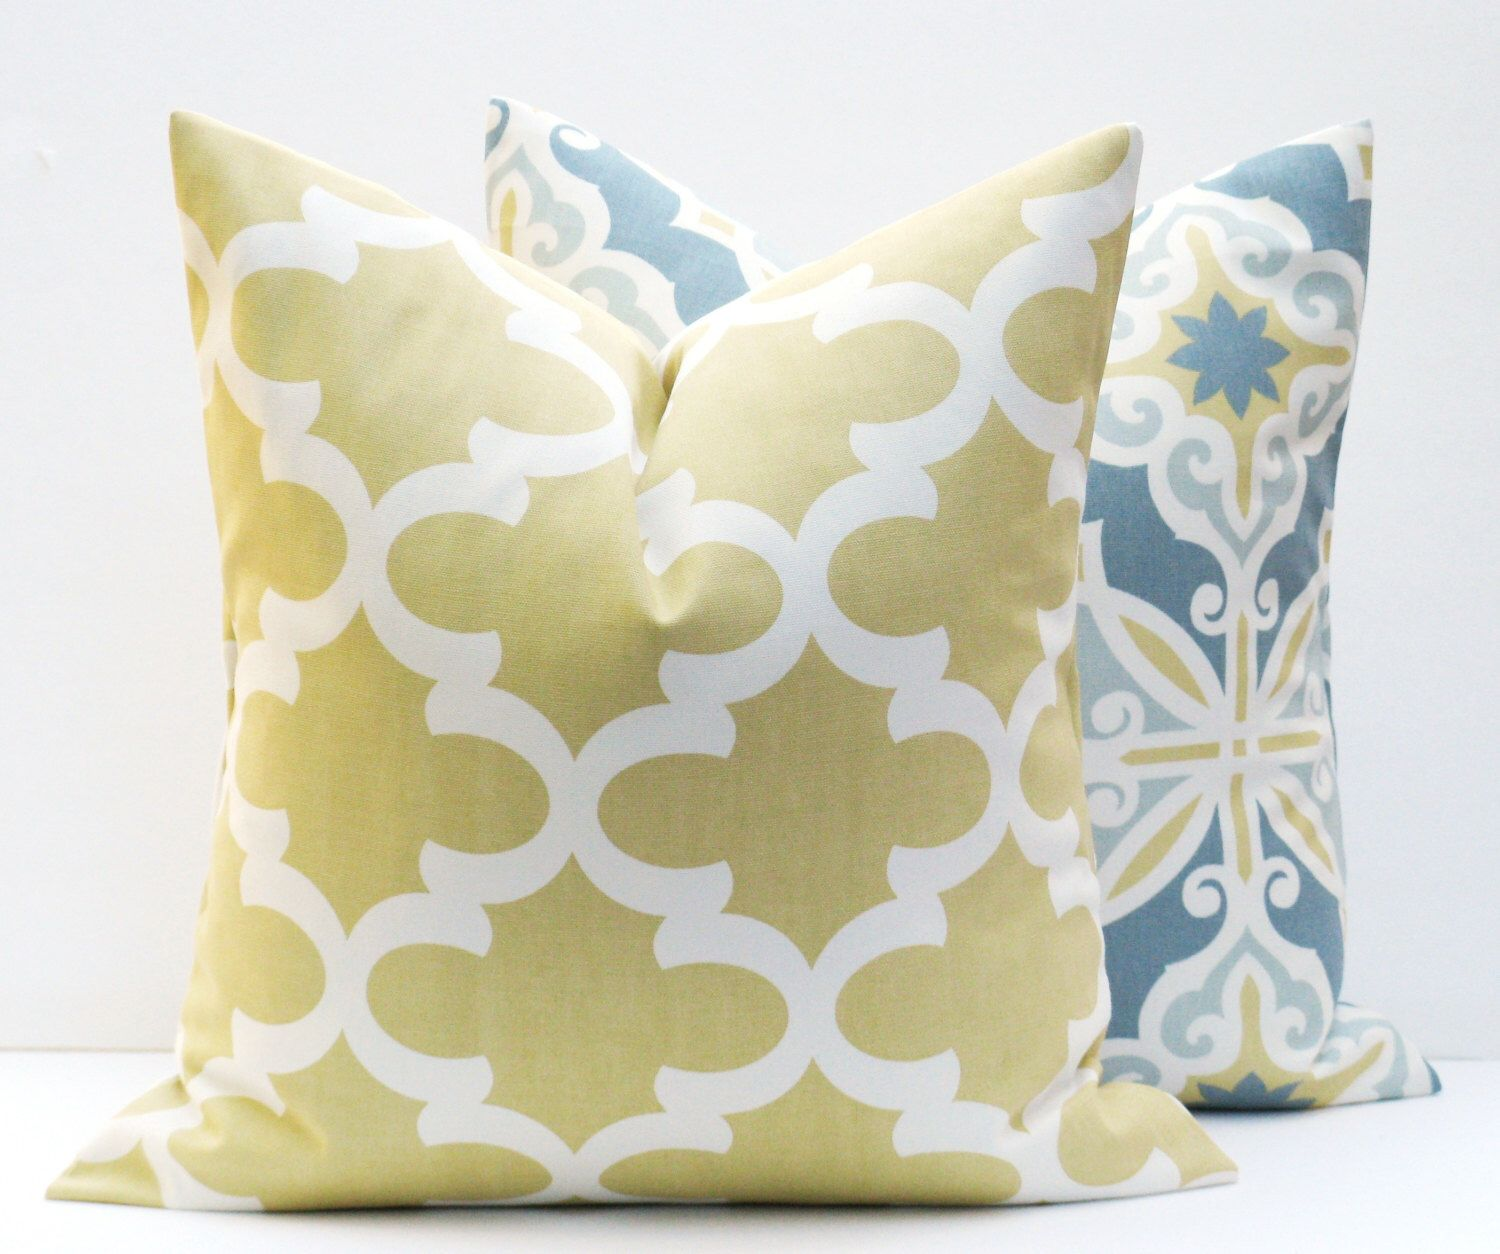 Pin By Kathy Wilt On Pillows Yellow Pillows Gold